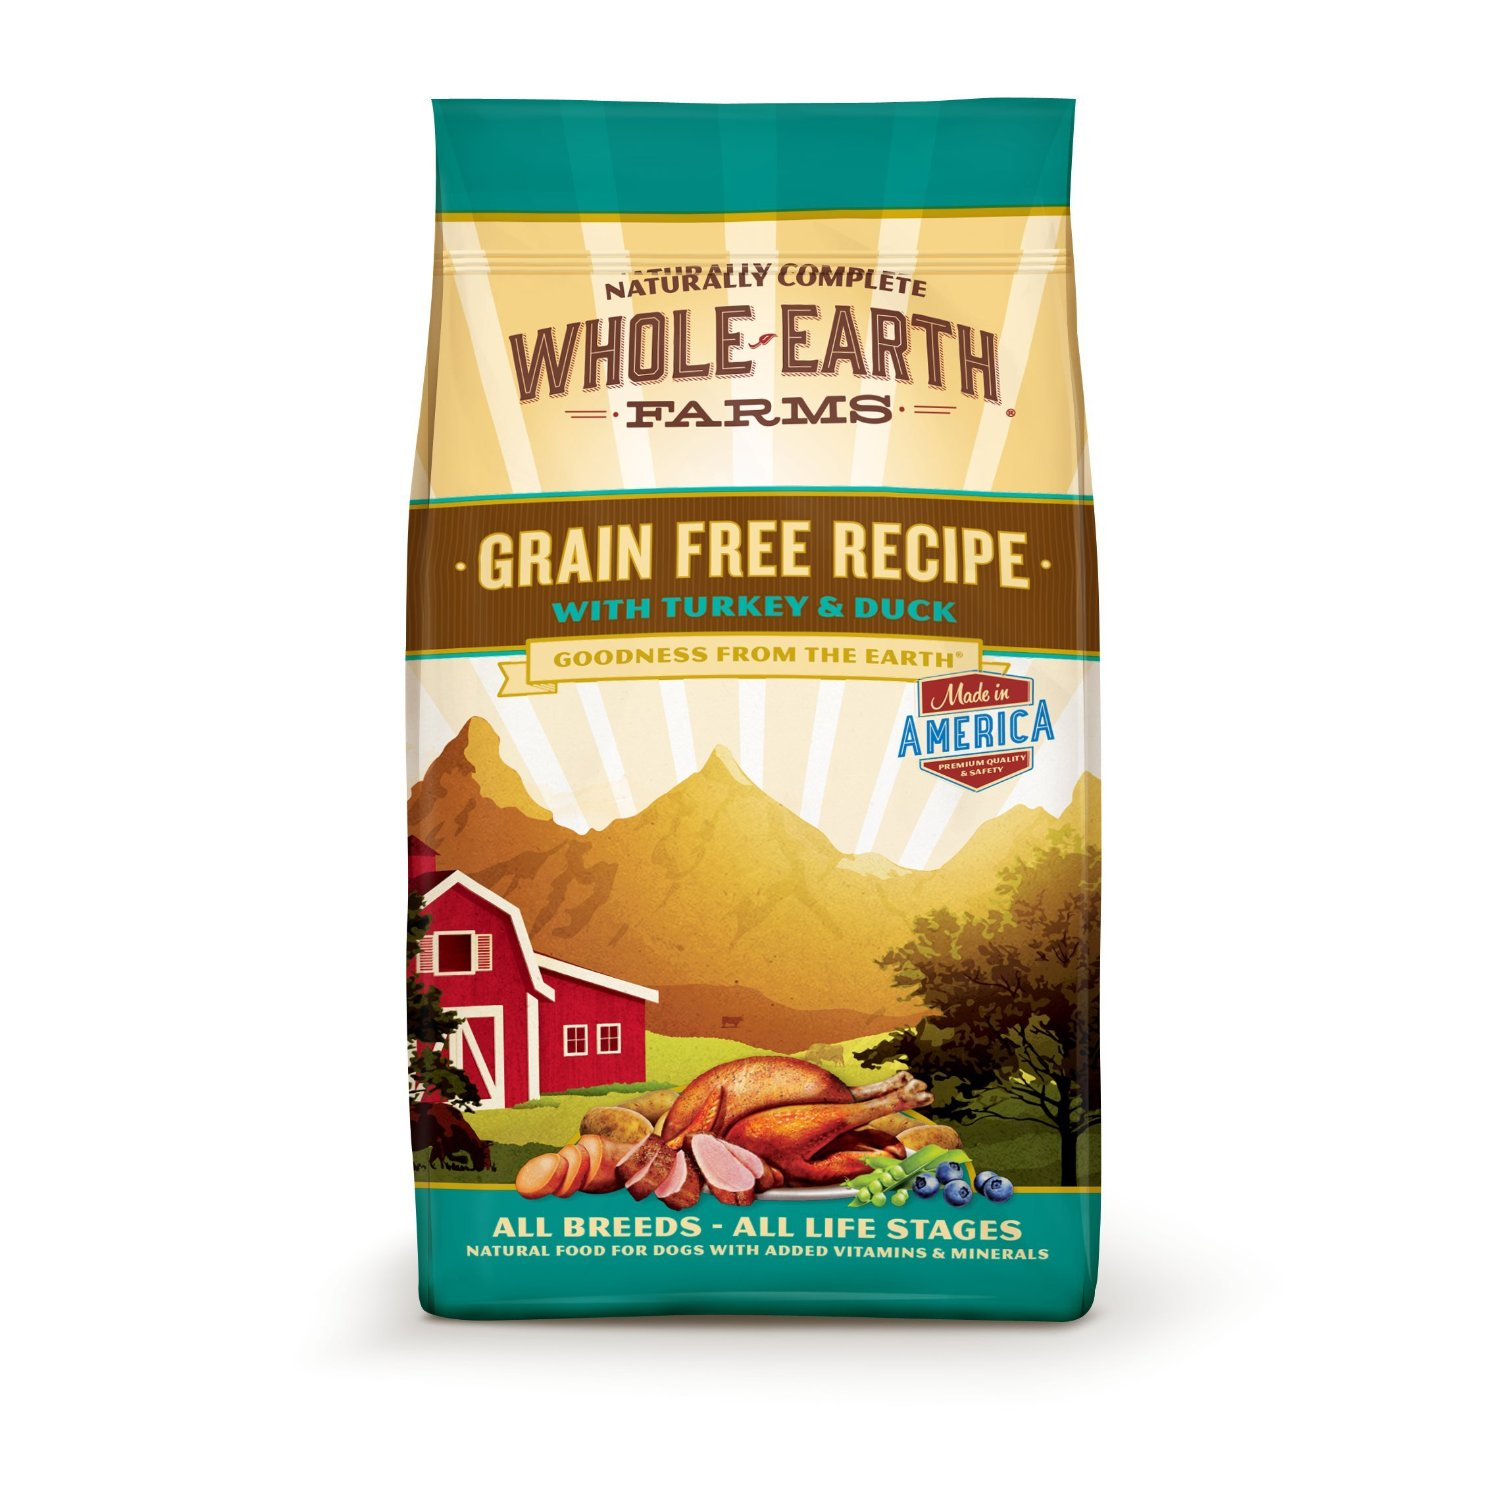 Whole Earth Farms Grain Free Turkey & Duck Dry Dog Food